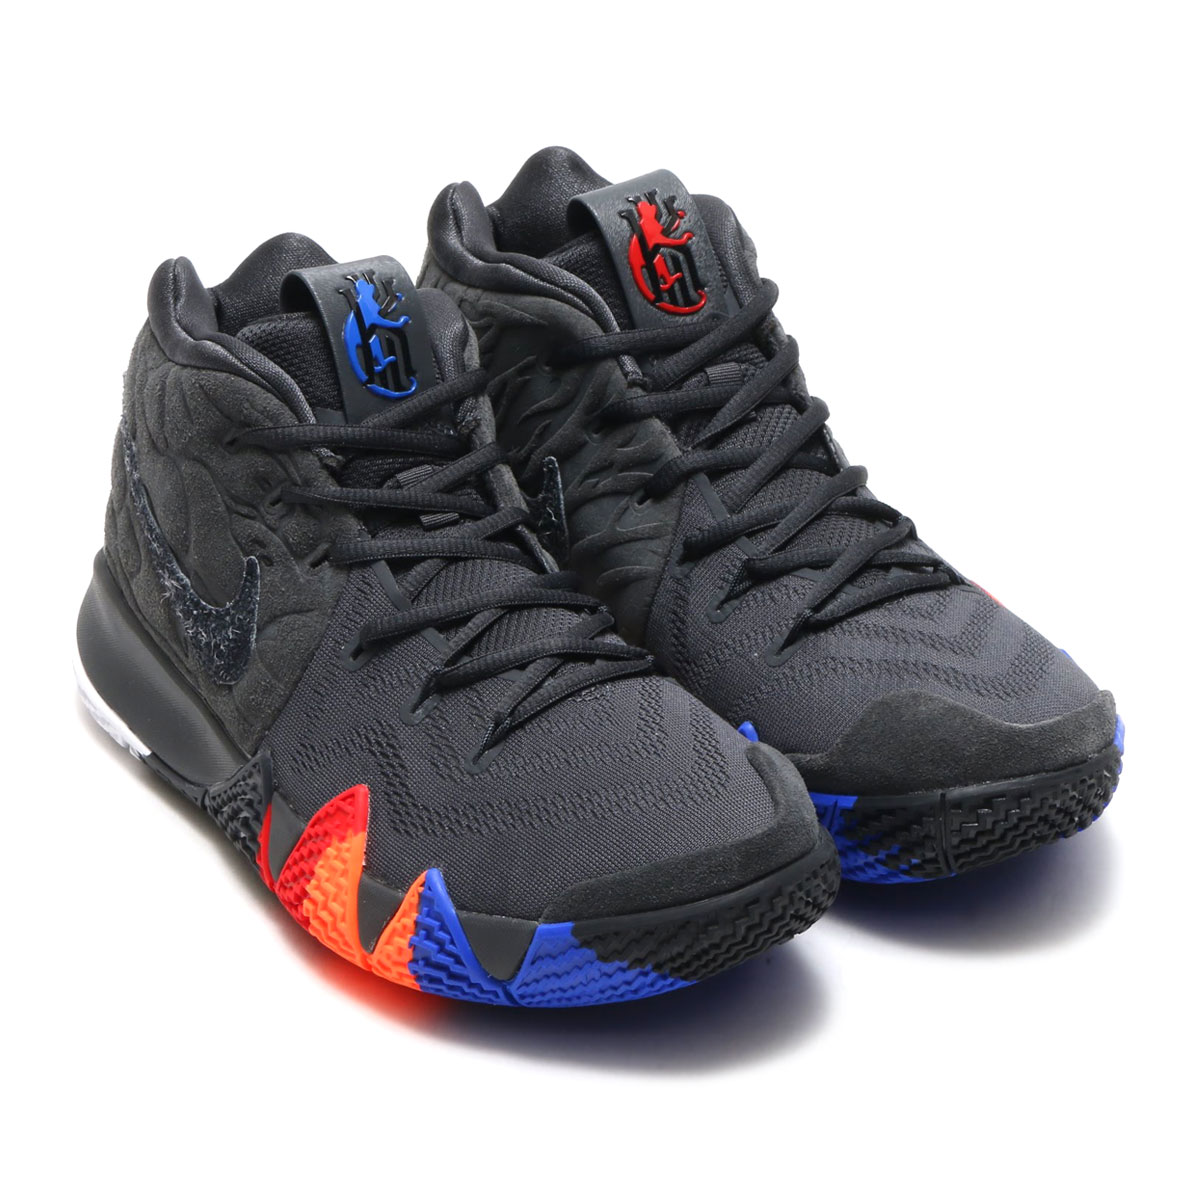 877b34fcdbf4 atmos pink  NIKE KYRIE 4 EP (Nike chi Lee 4 EP) (ANTHRACITE BLACK ...